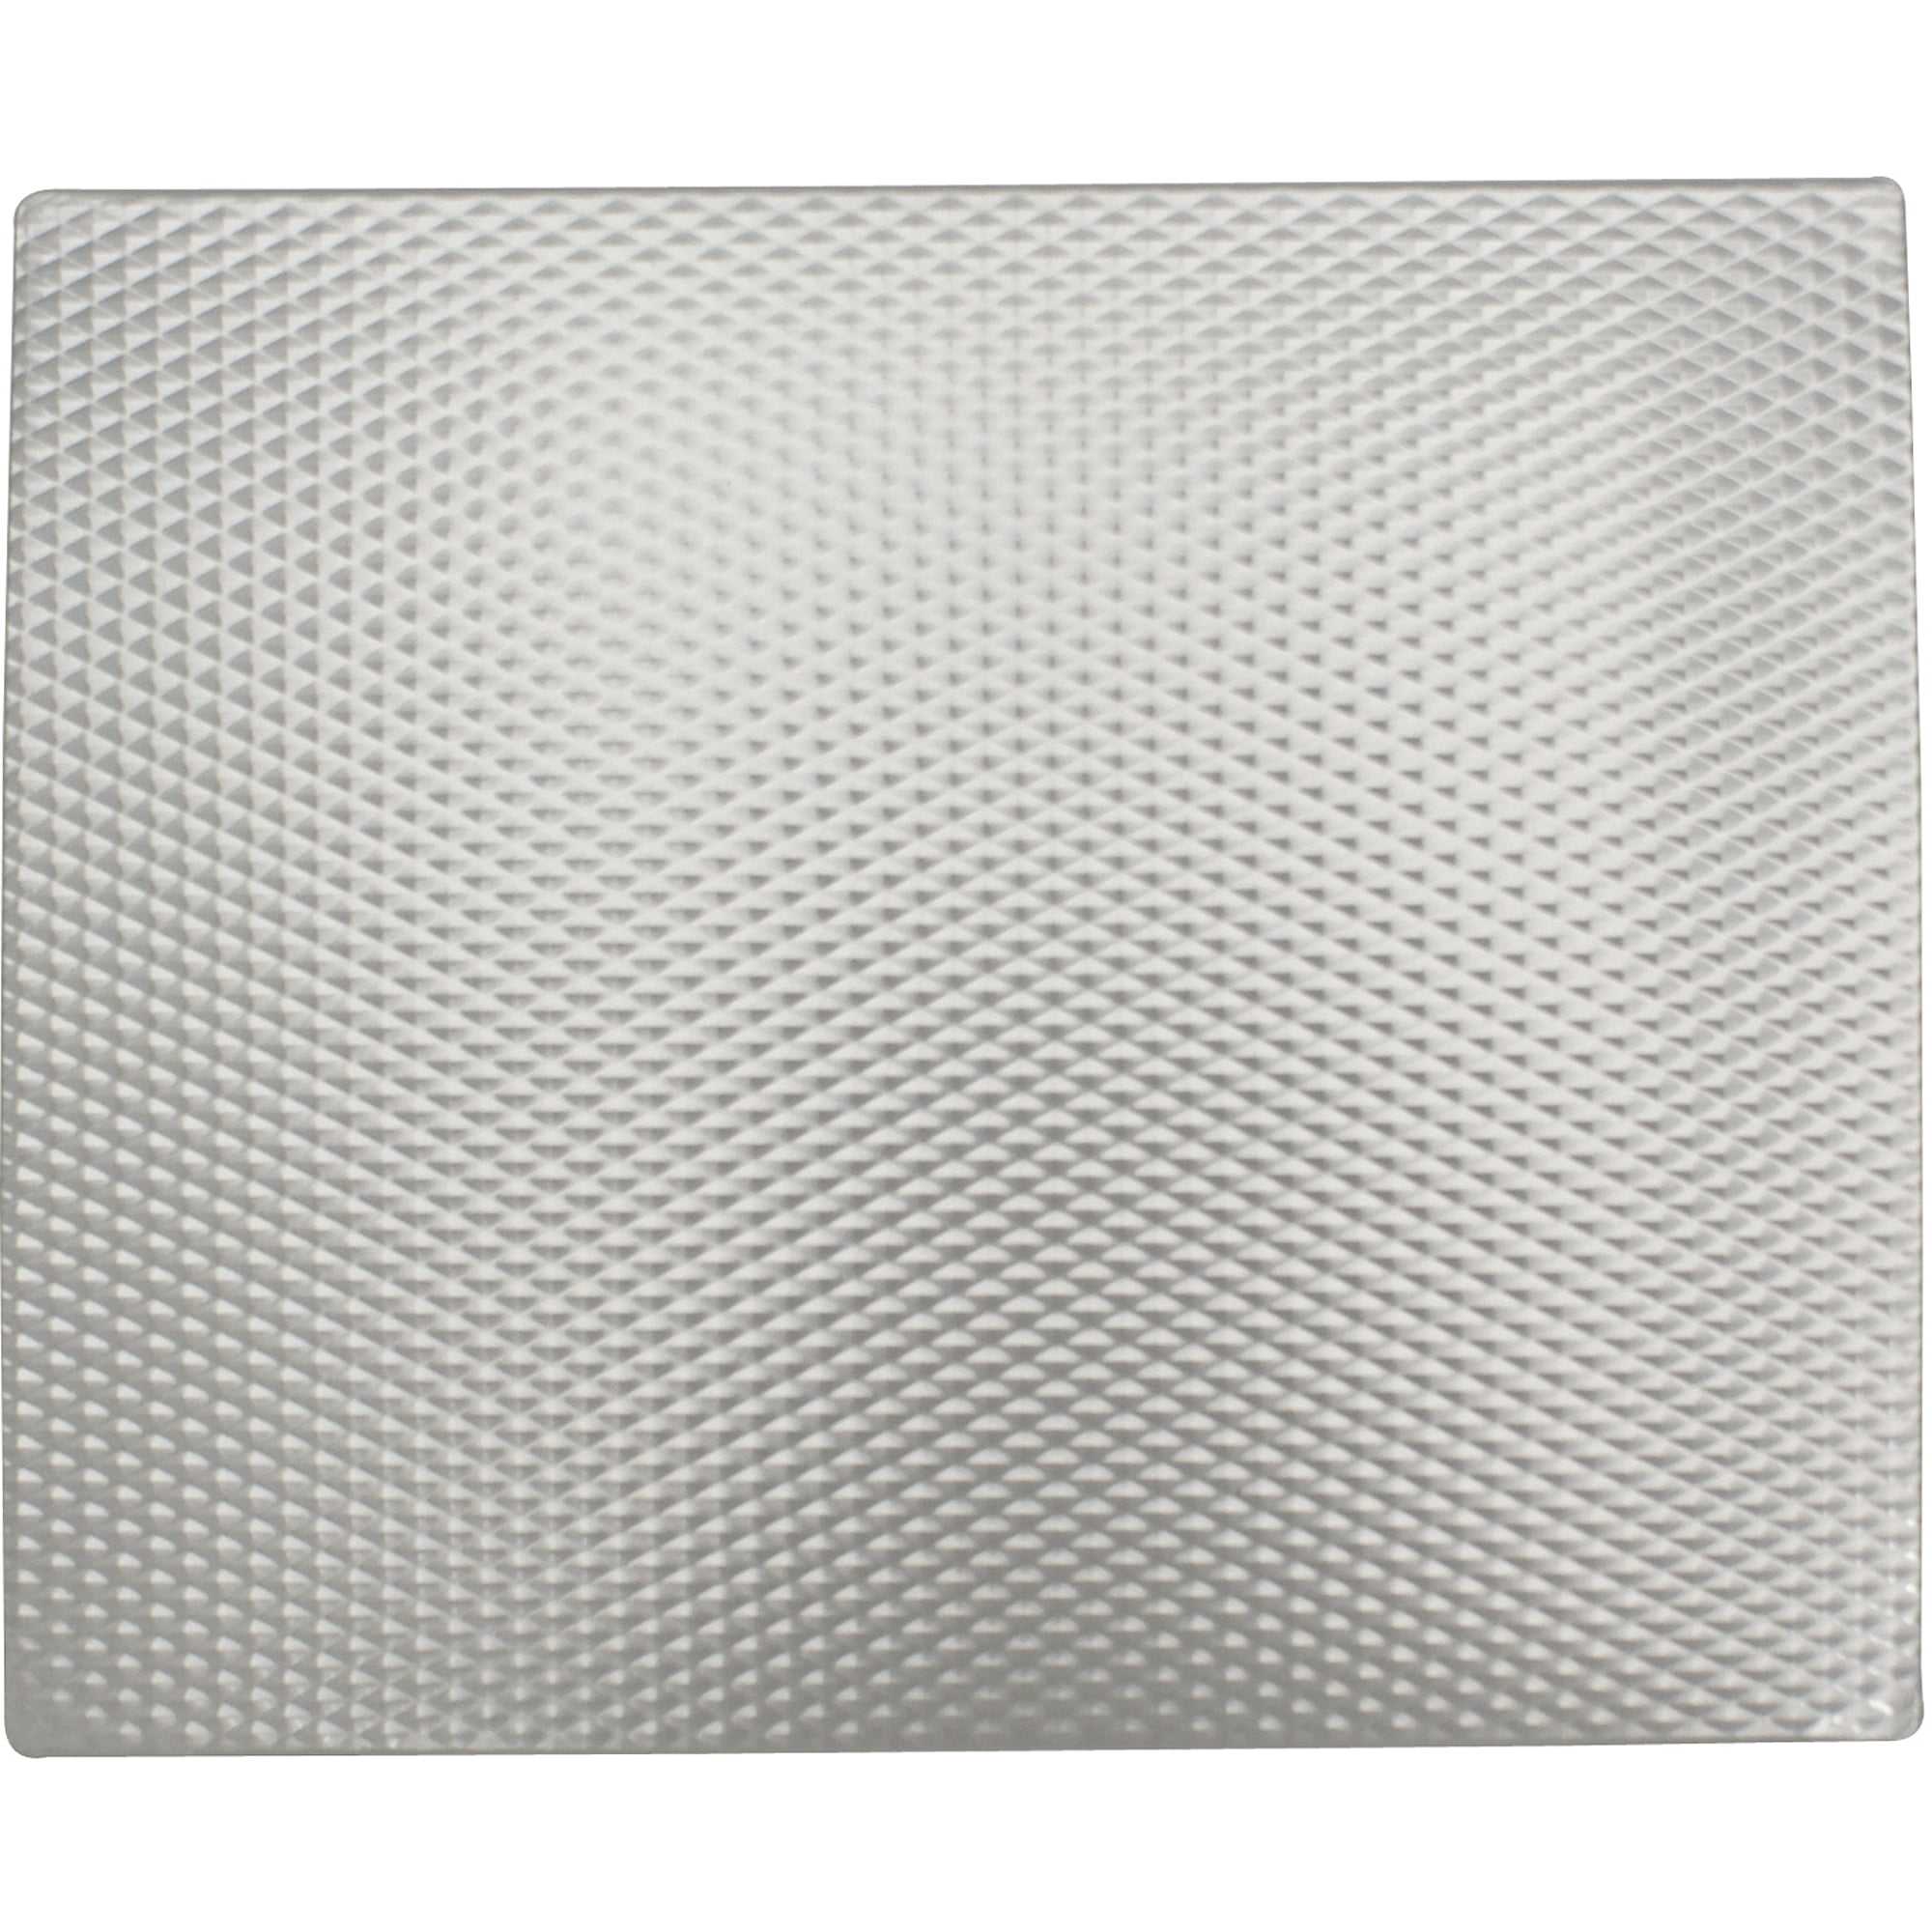 countertop protector kitchen countertop protectors Backsplash Protector Kitchen No Grout Range Kleen 1 Piece Counter Mat Silverwave